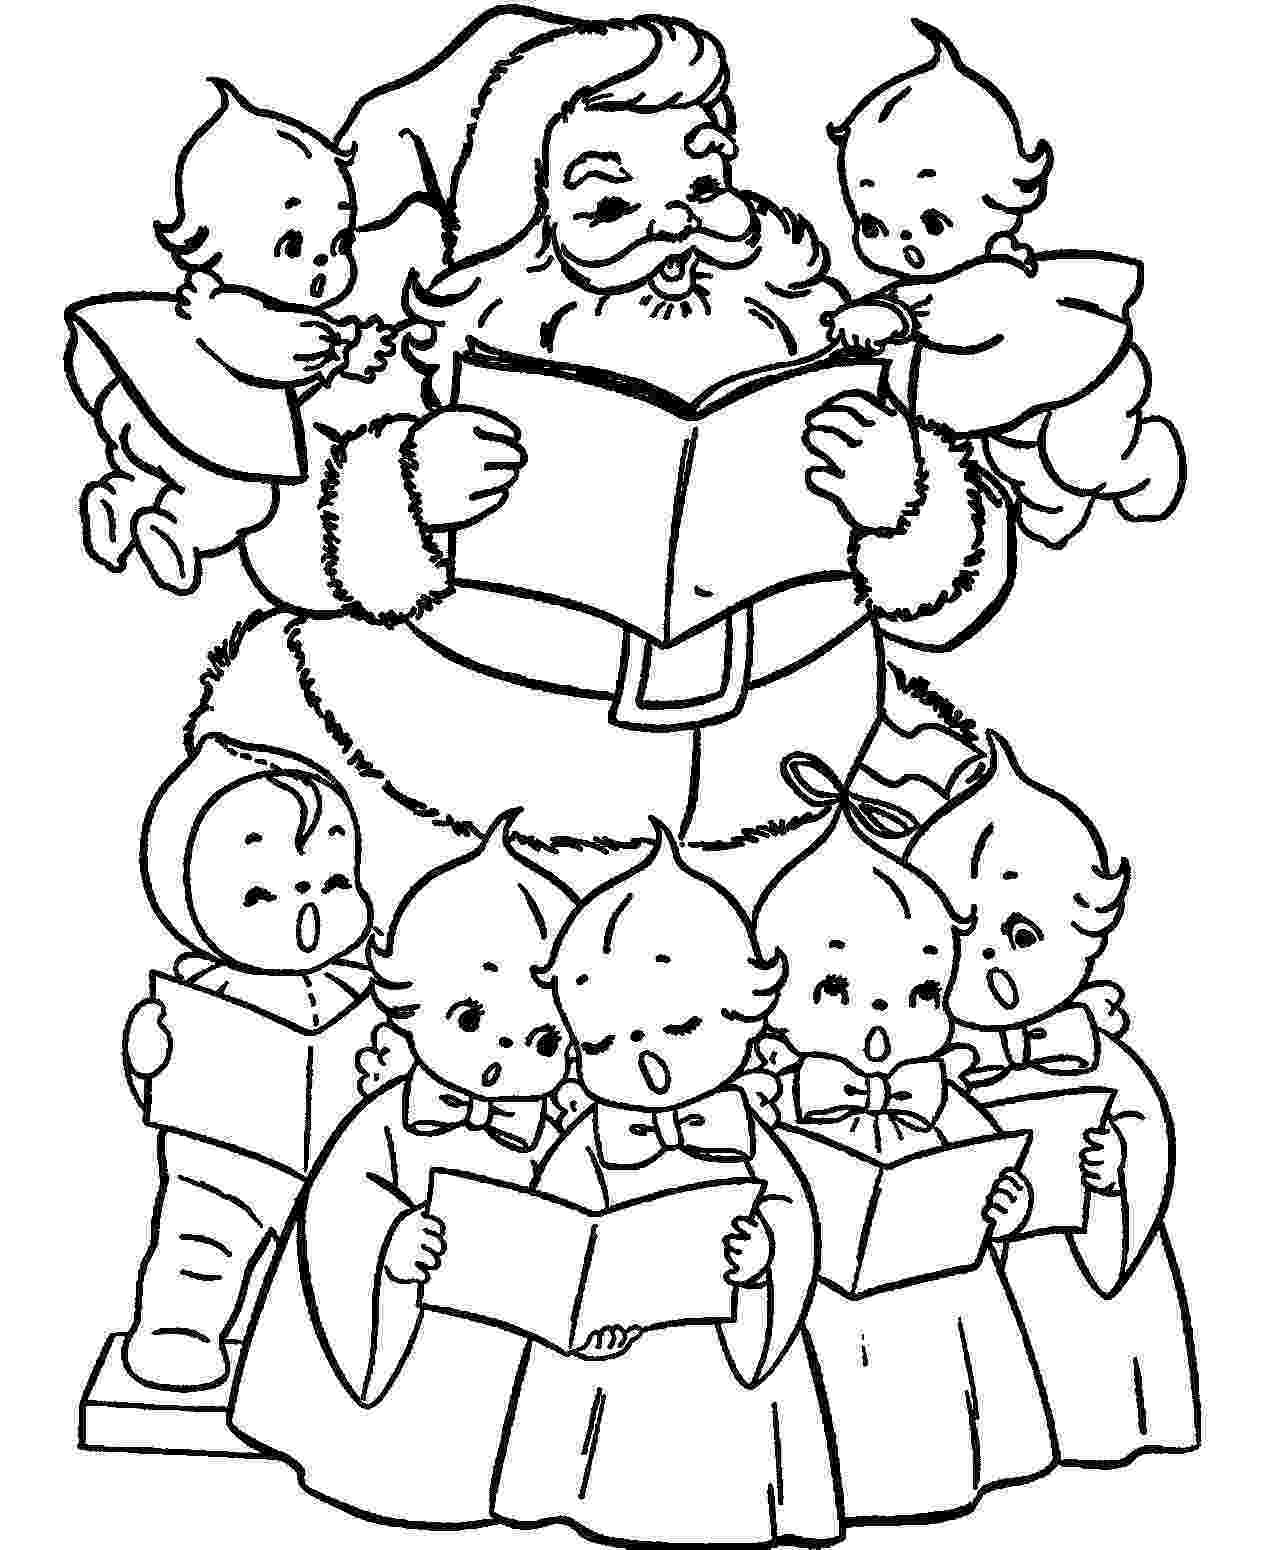 christmas angels to color download free coloring pages for christmas angel or print free to color christmas angels